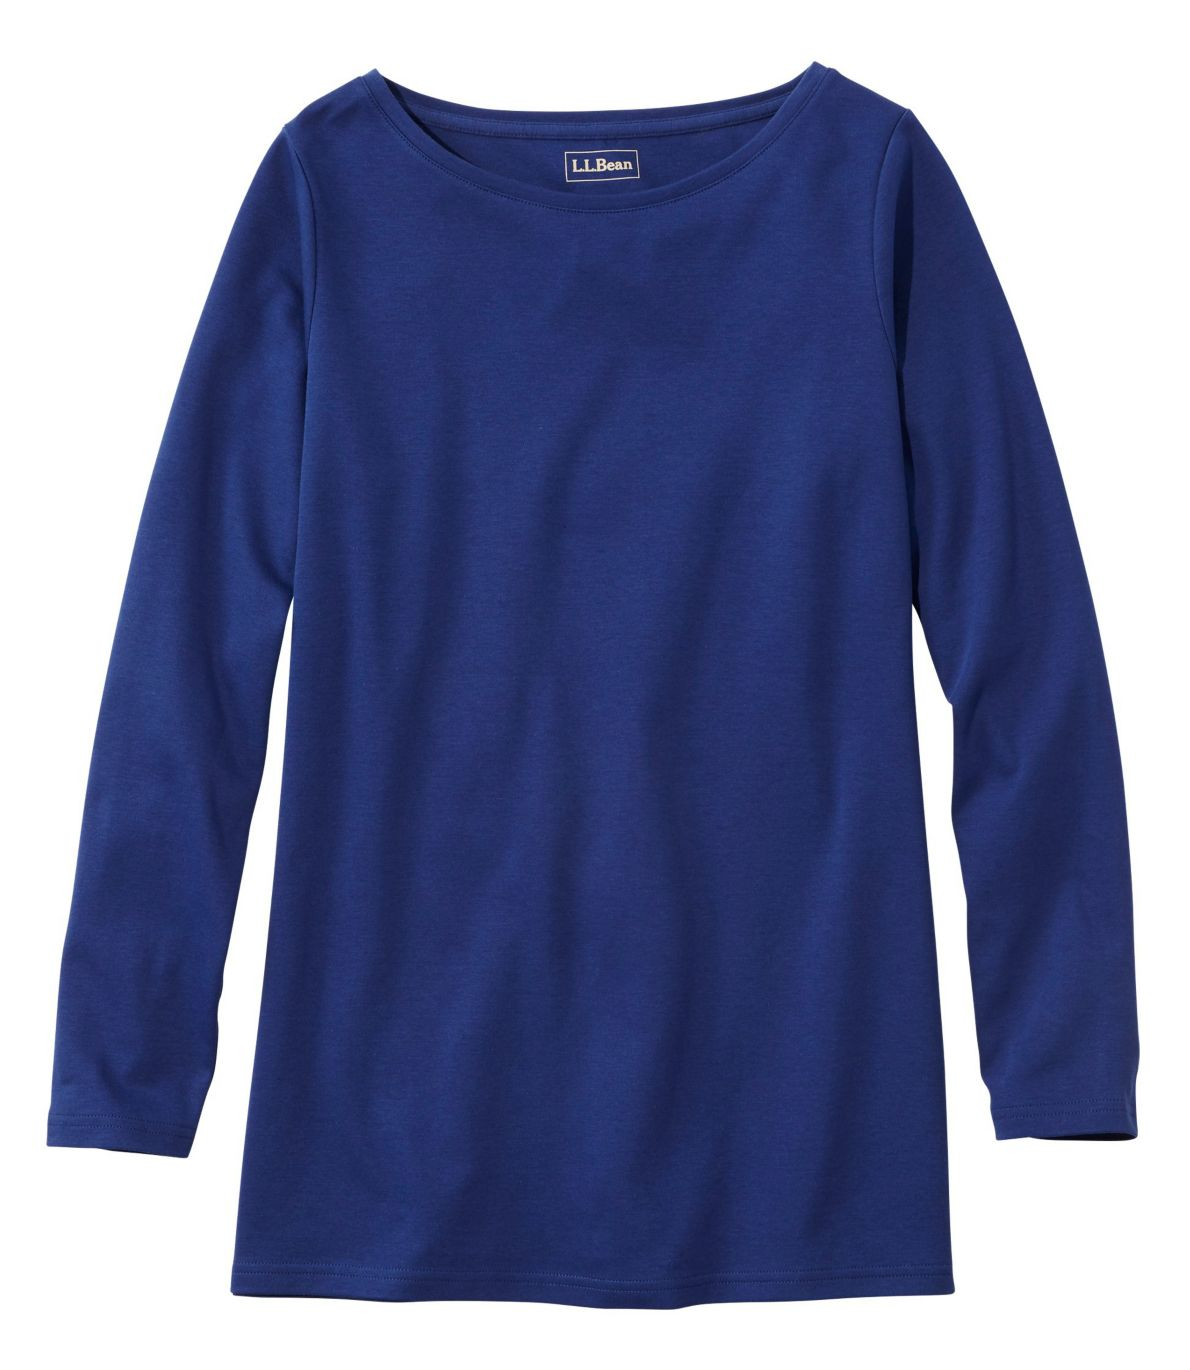 Women's L.L.Bean Tee, Long-Sleeve Boatneck Tunic